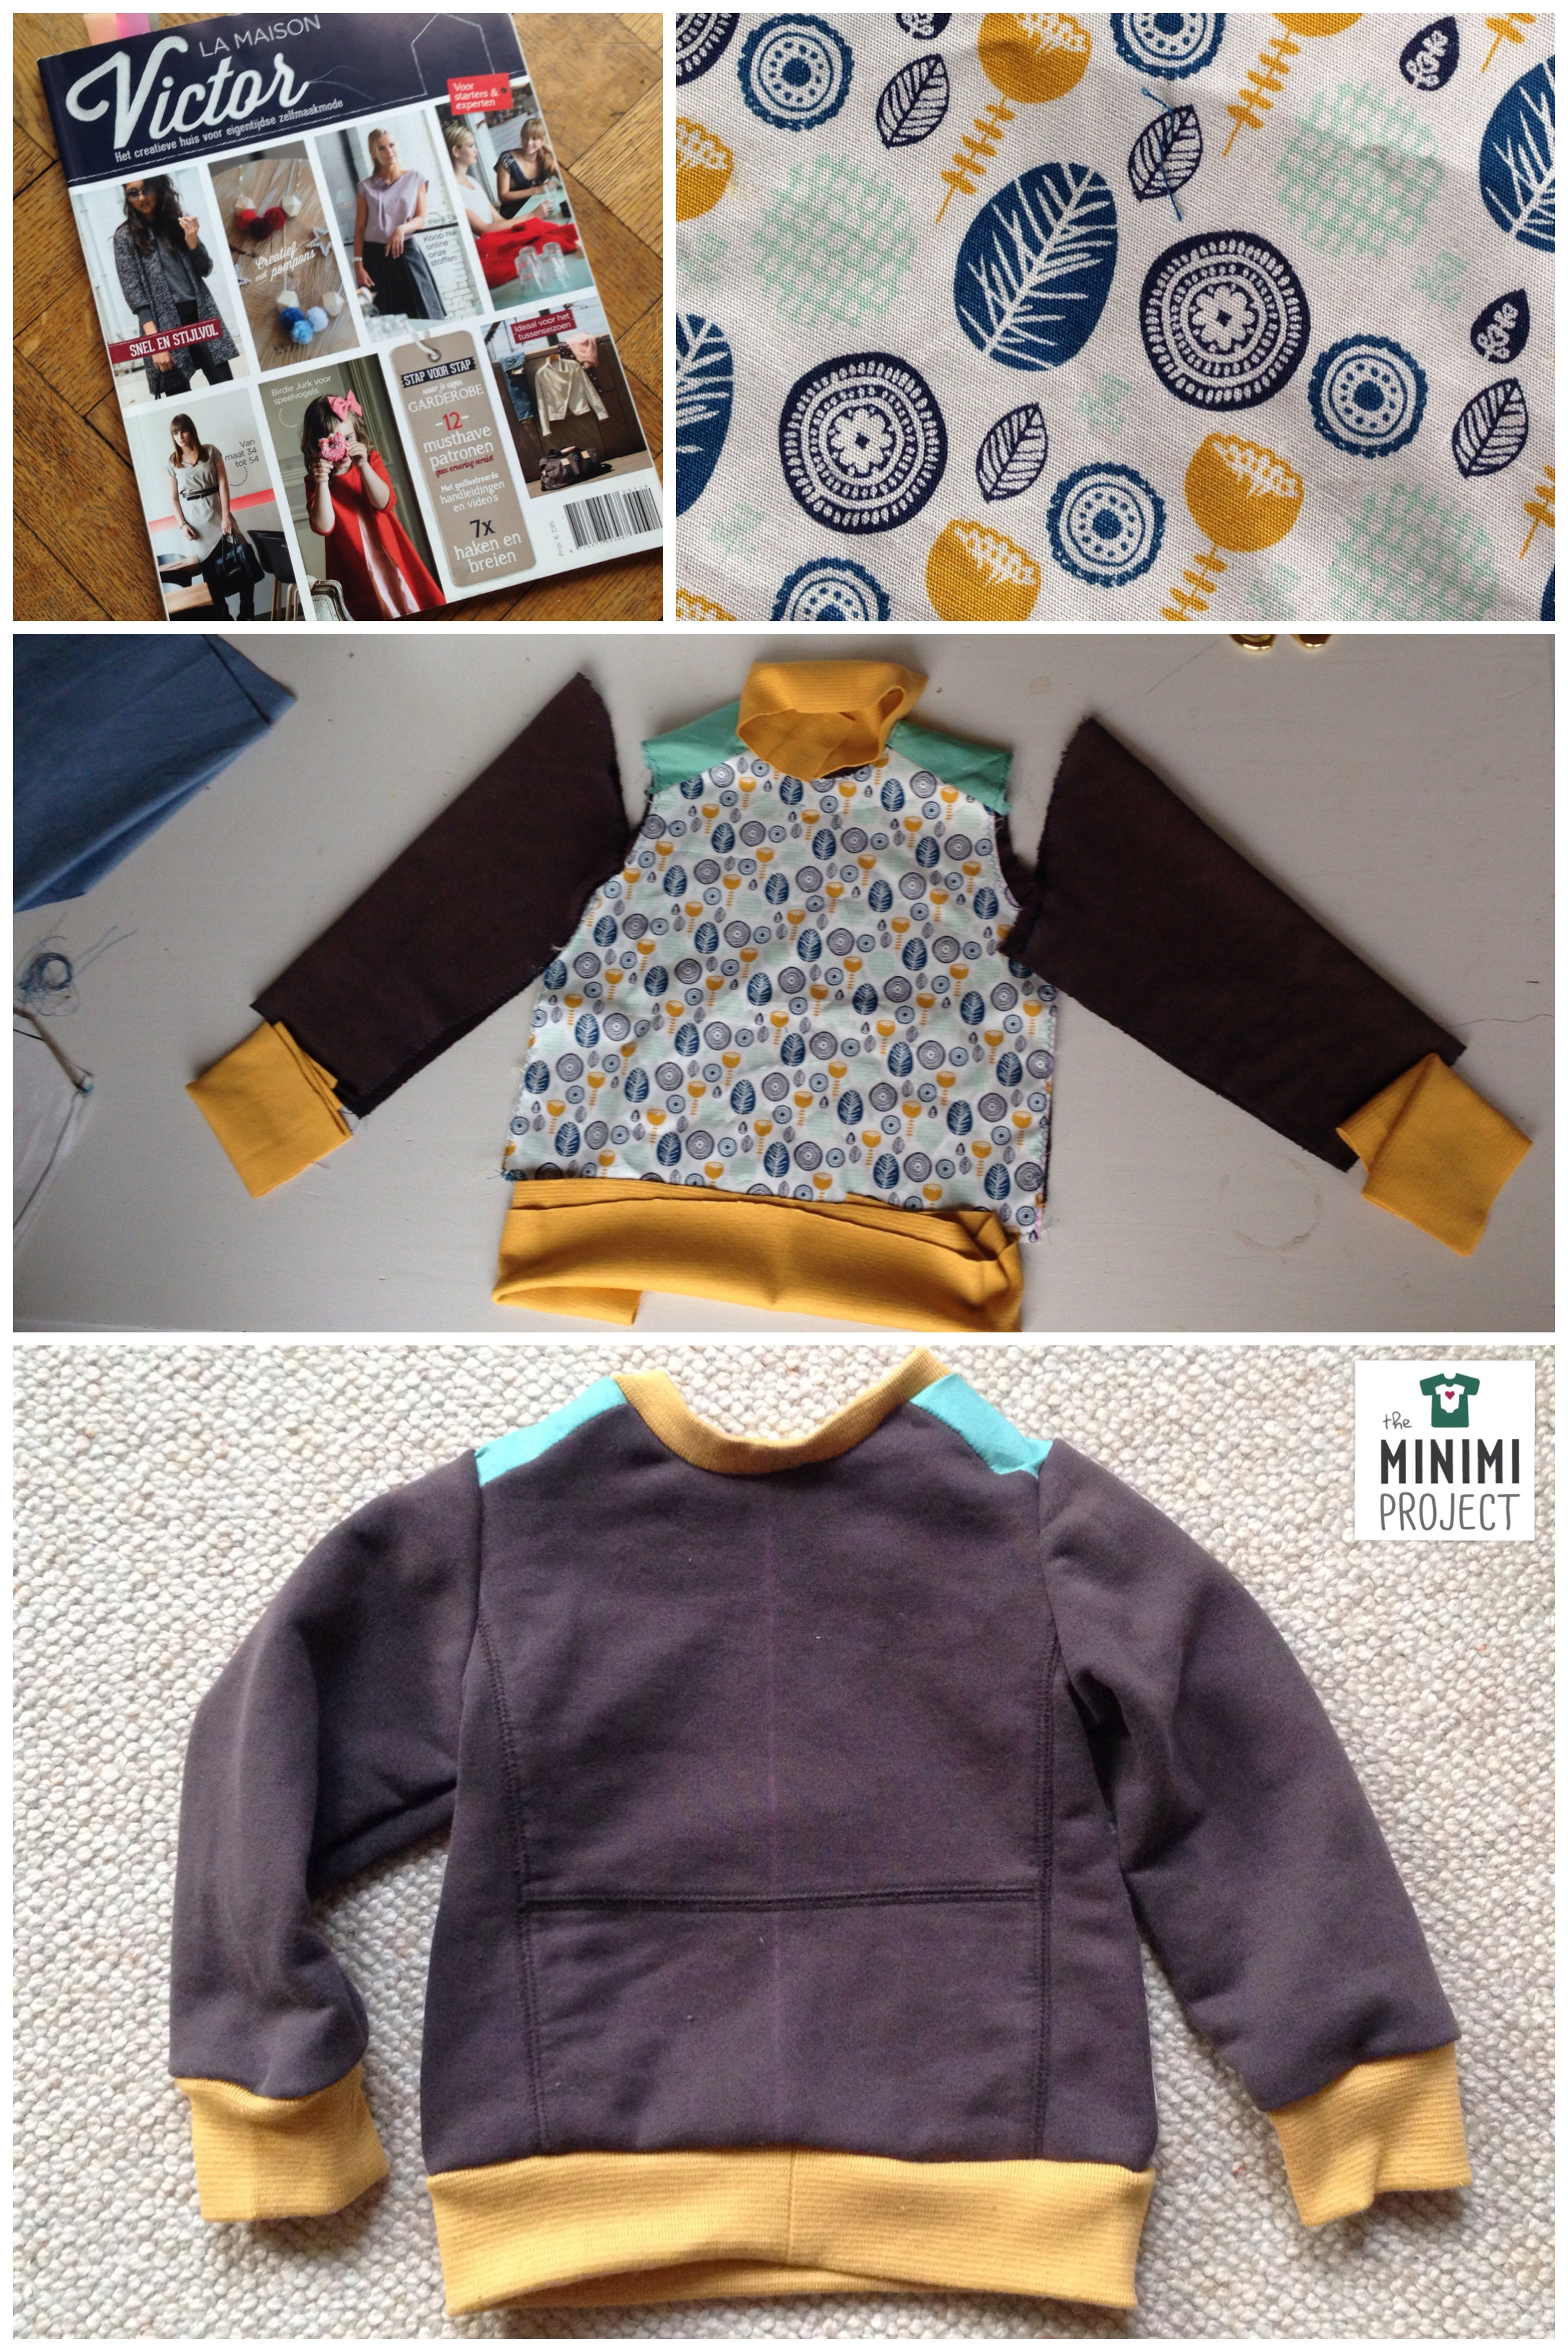 Using the leather sweater pattern from La maison Victor and a fabric from Veritas, i gave a second life to an old sweatshirt of mine.